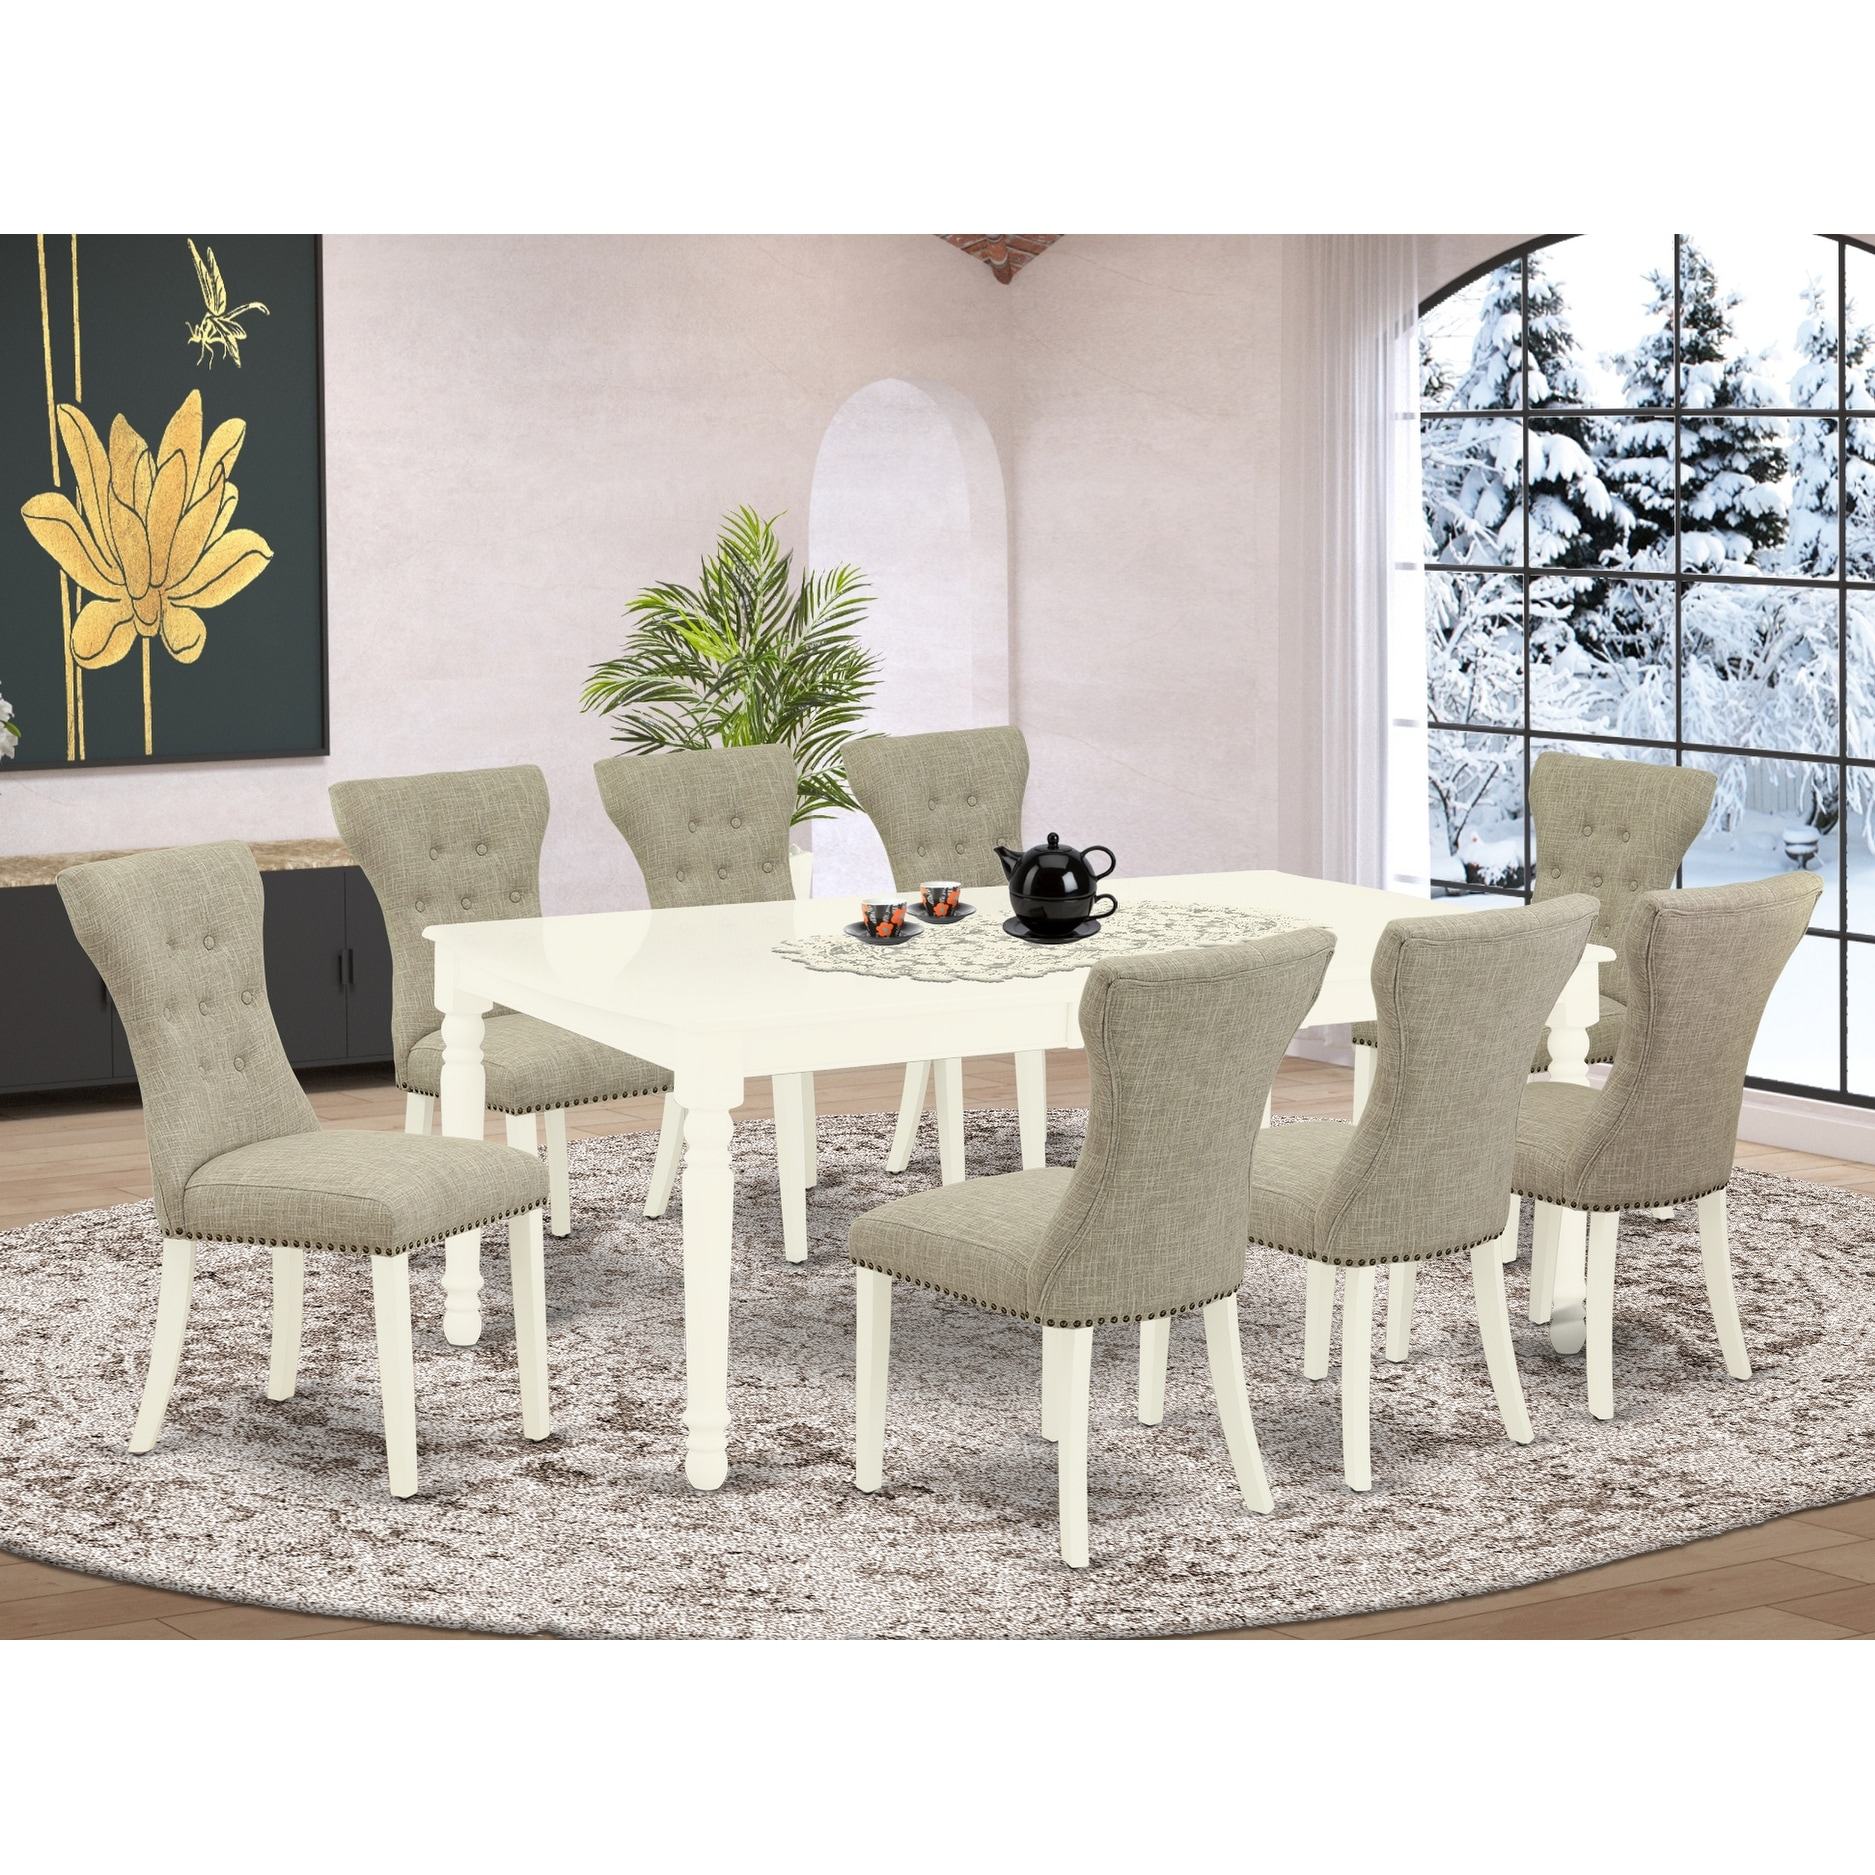 Doga9 Lwh 35 9 Piece Small Dining Table Set 8 Dining Room Chairs And Butterfly Leaf Dinner Table High Back Linen White Finish Overstock 32085572